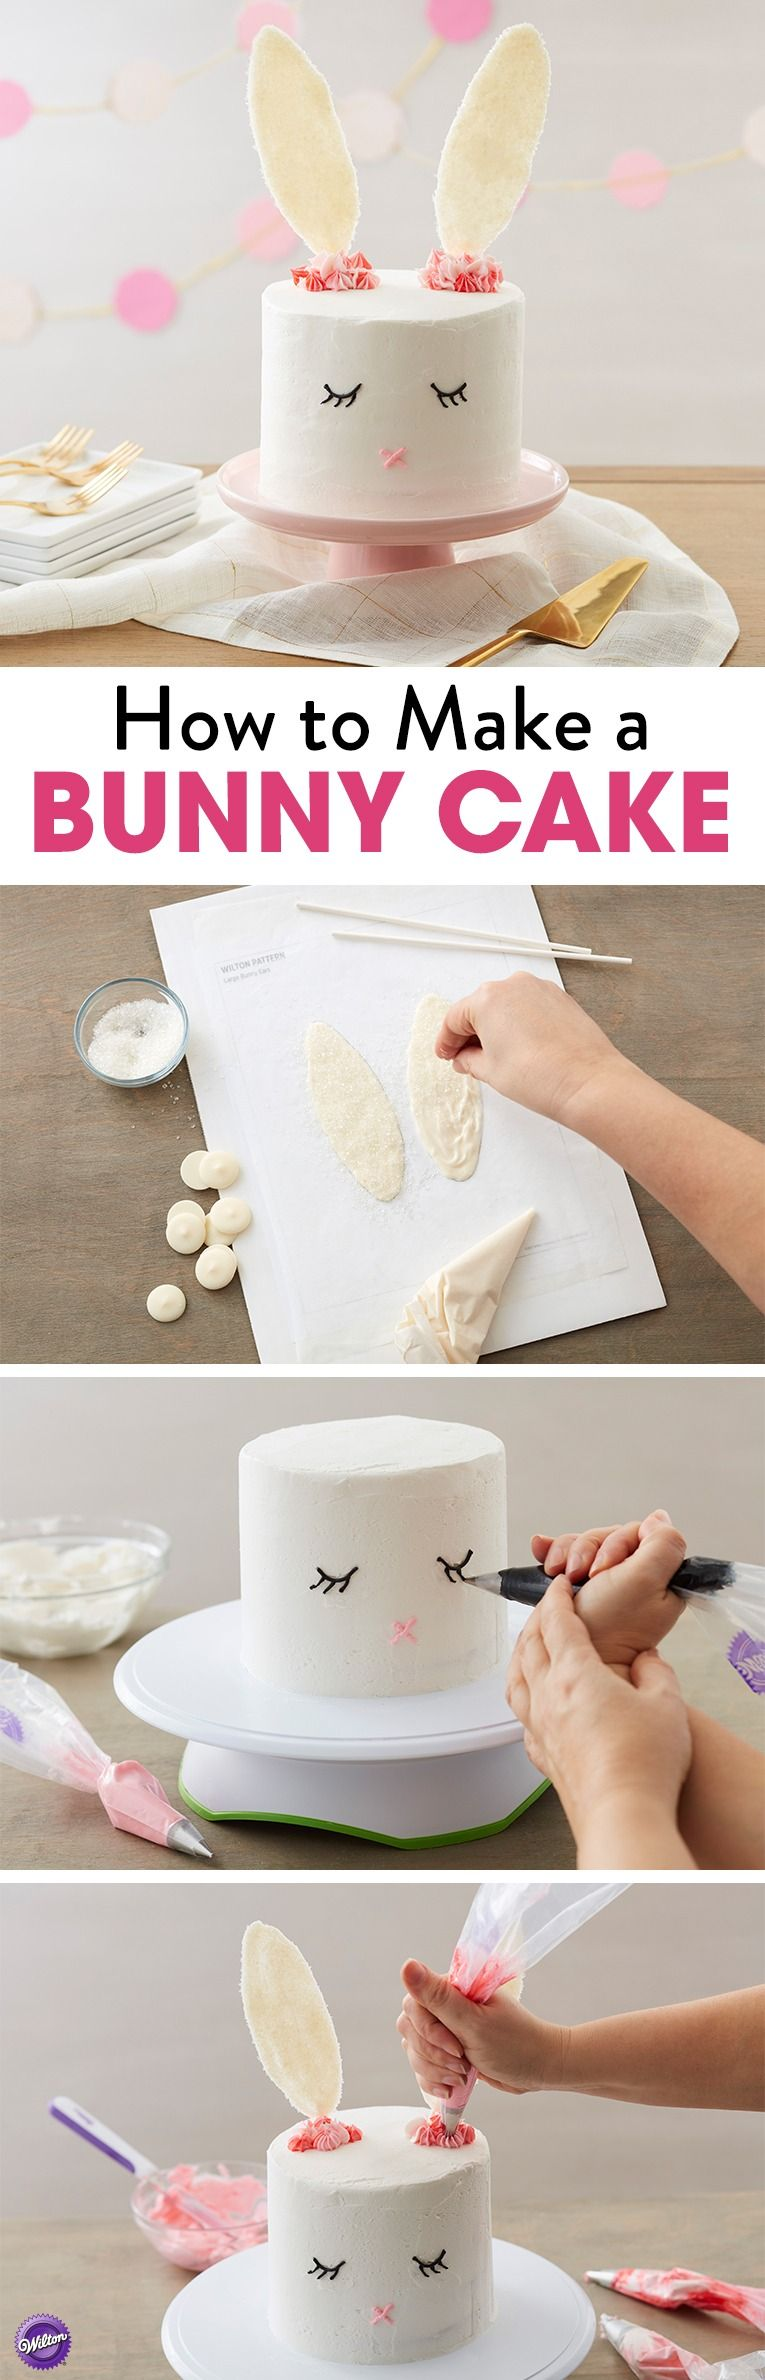 How To Make A Bunny Cake  With Dreams Of Jelly Beans, Chocolates And  Colorful